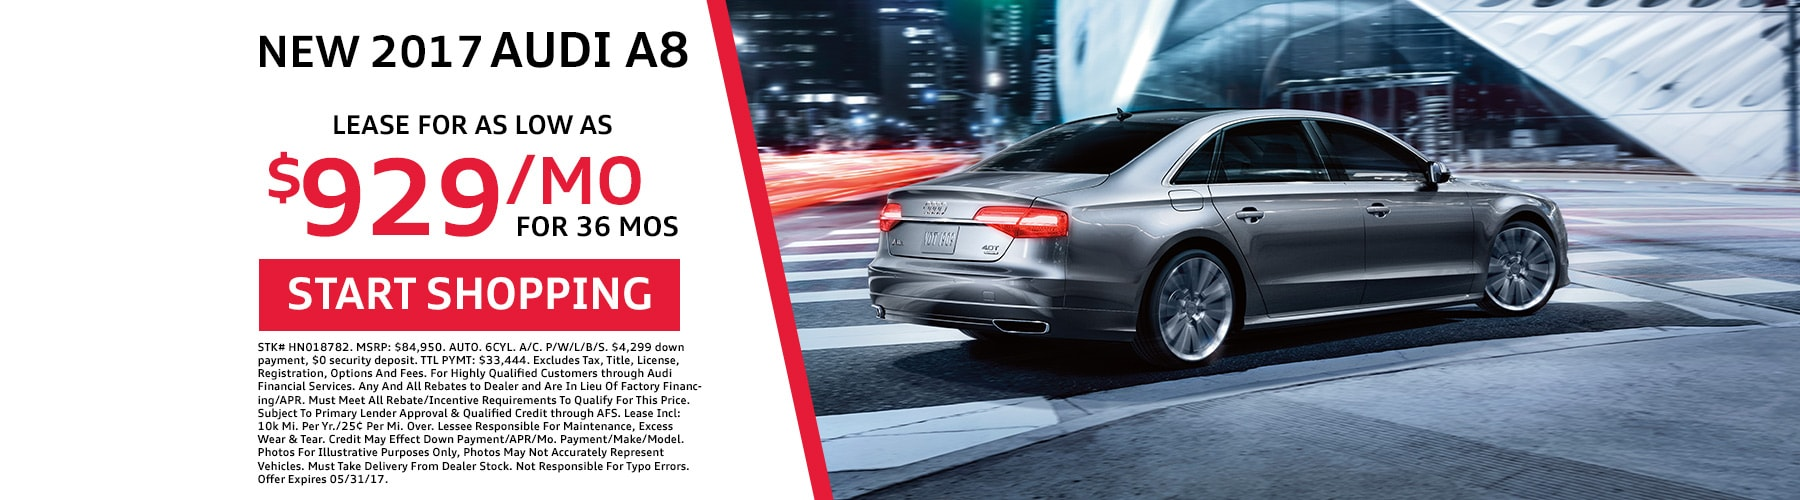 new audi lease specials audi specials near bound brook nj. Cars Review. Best American Auto & Cars Review